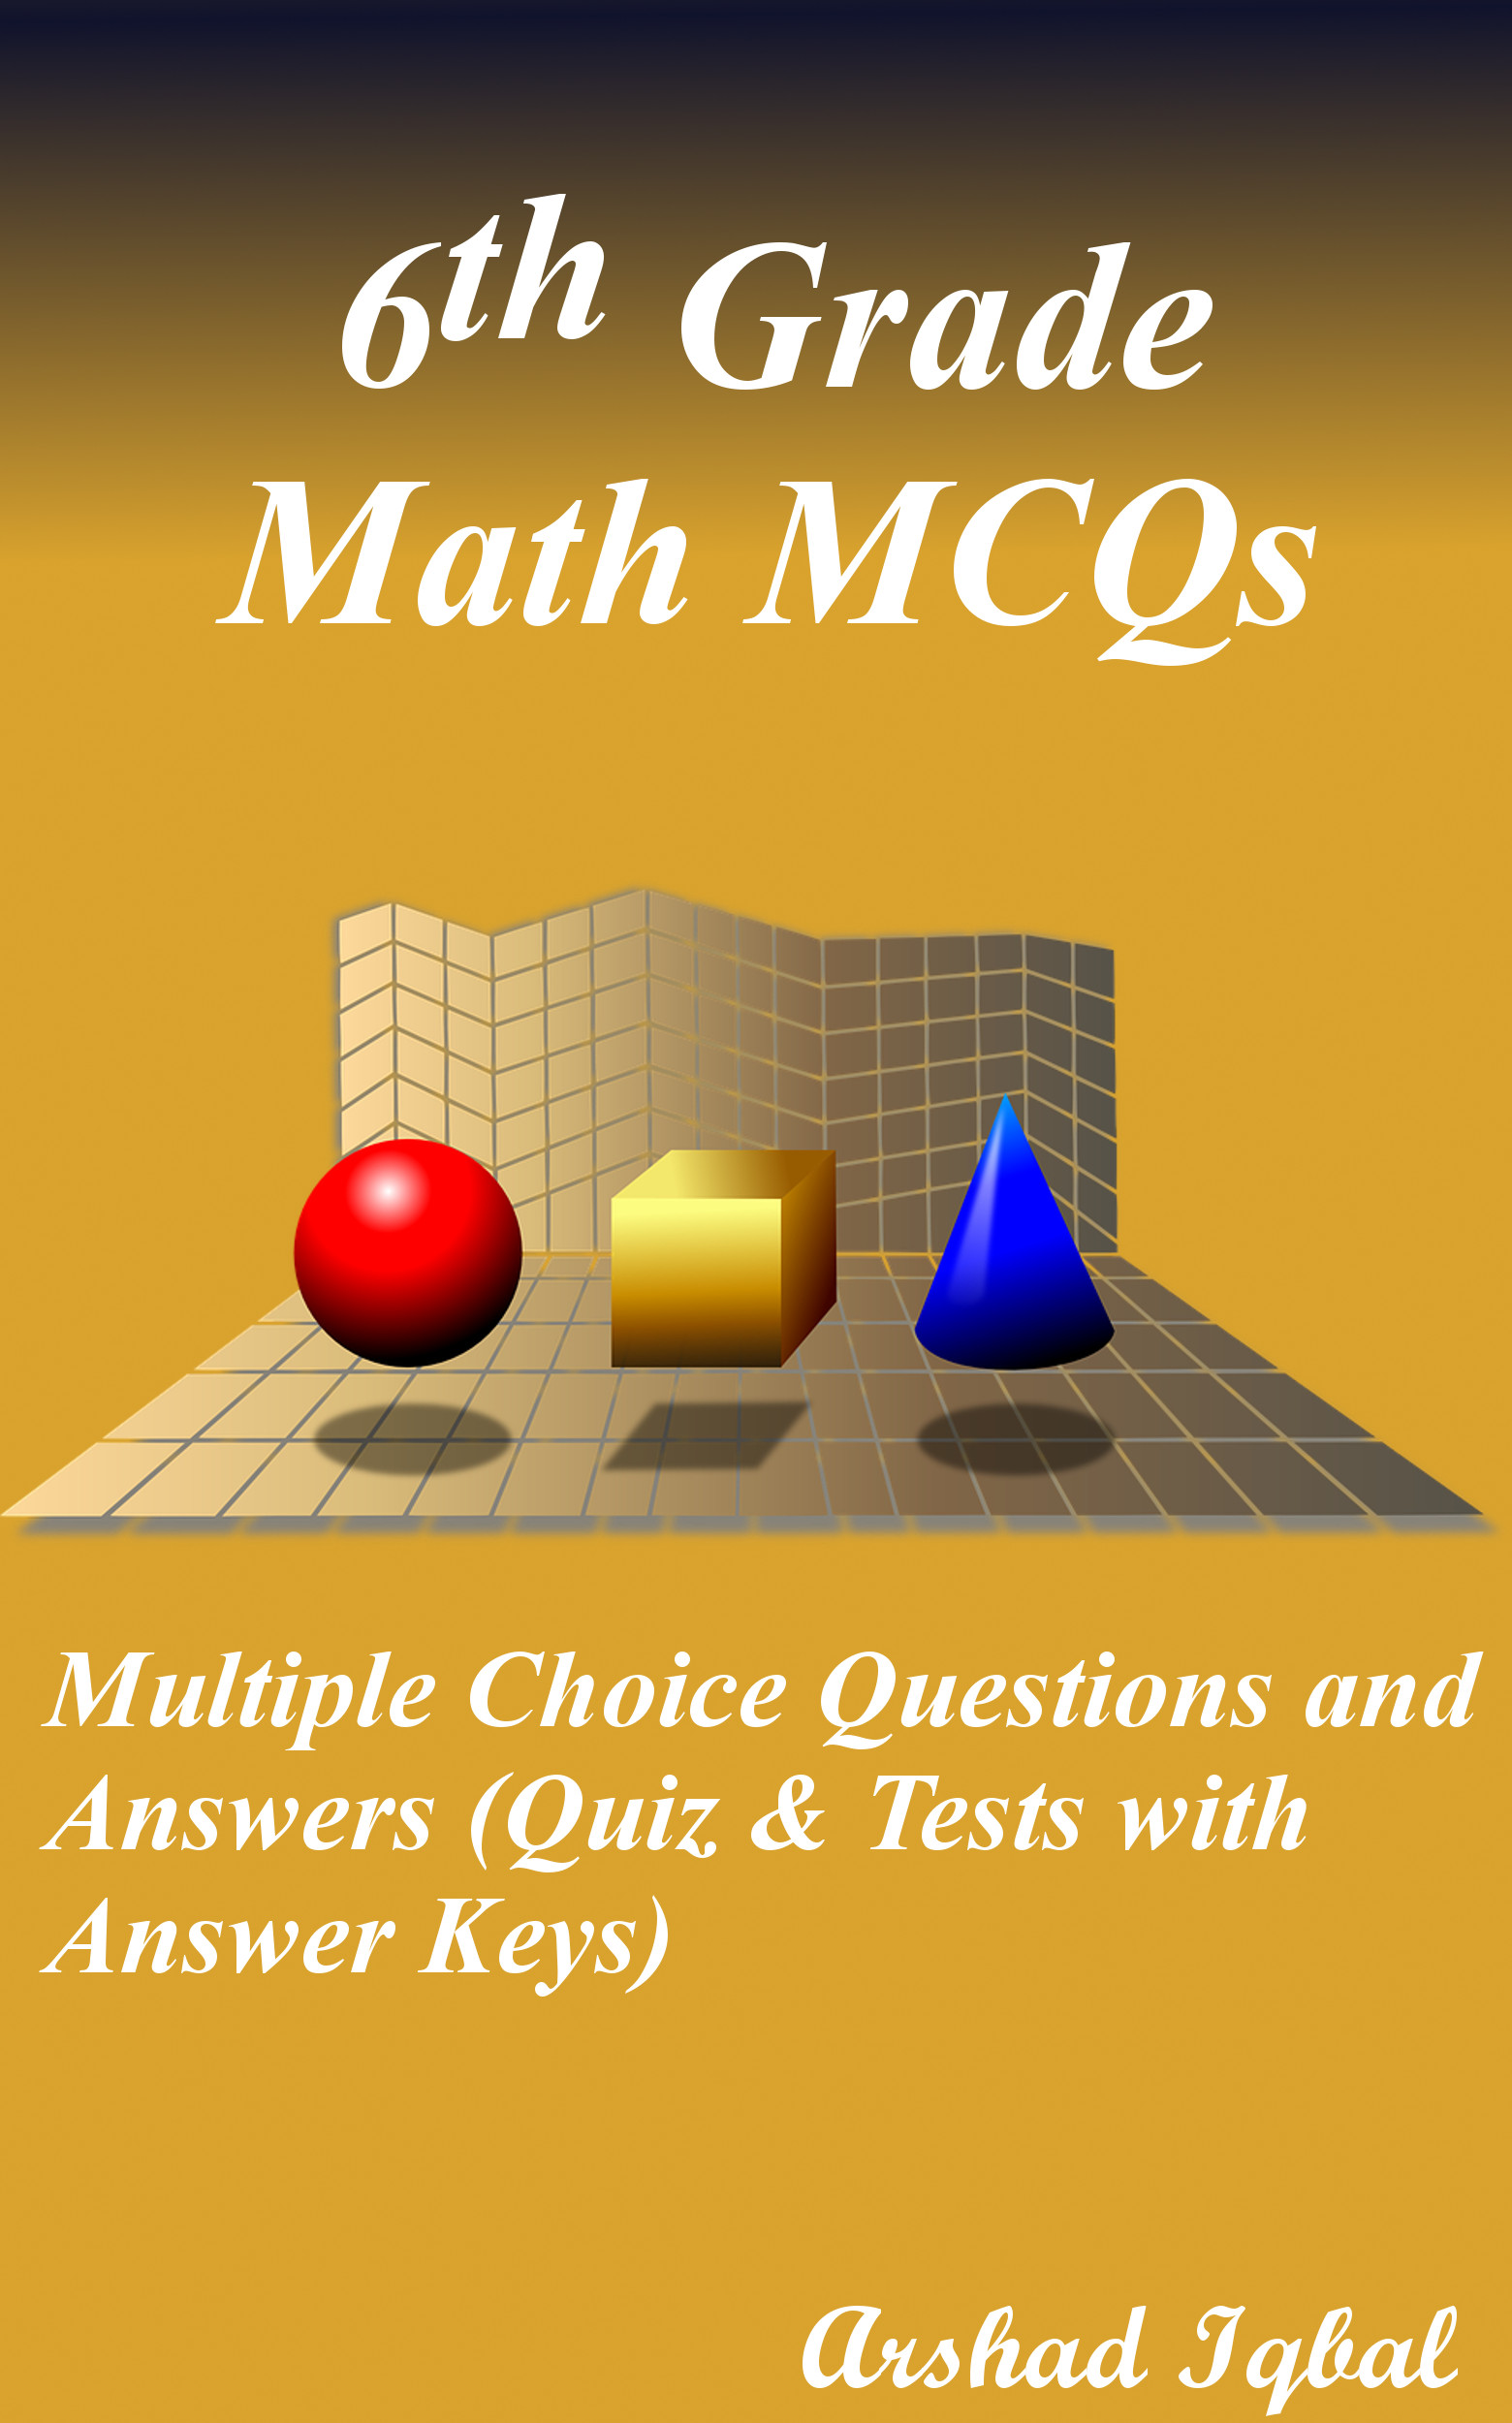 6th Grade Math MCQs: Multiple Choice Questions and Answers (Quiz & Tests  with Answer Keys), an Ebook by Arshad Iqbal